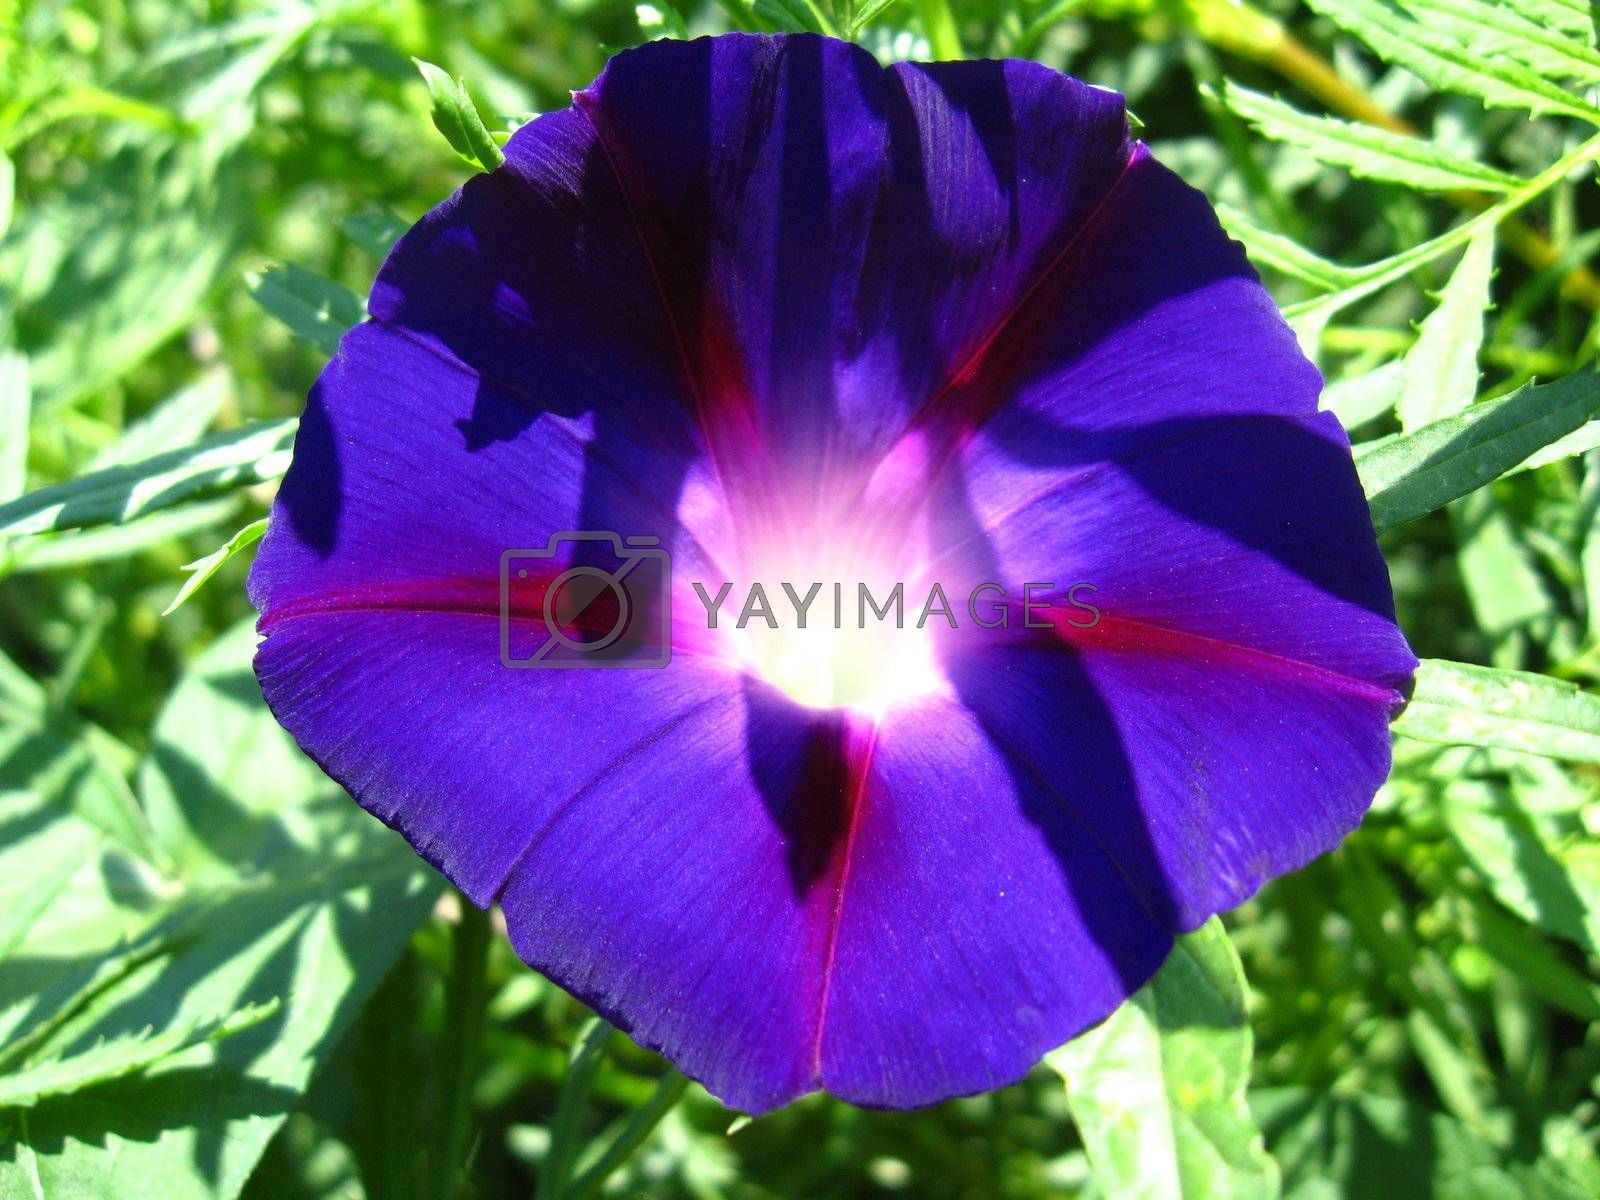 beautiful flower of Ipomoea is very motley